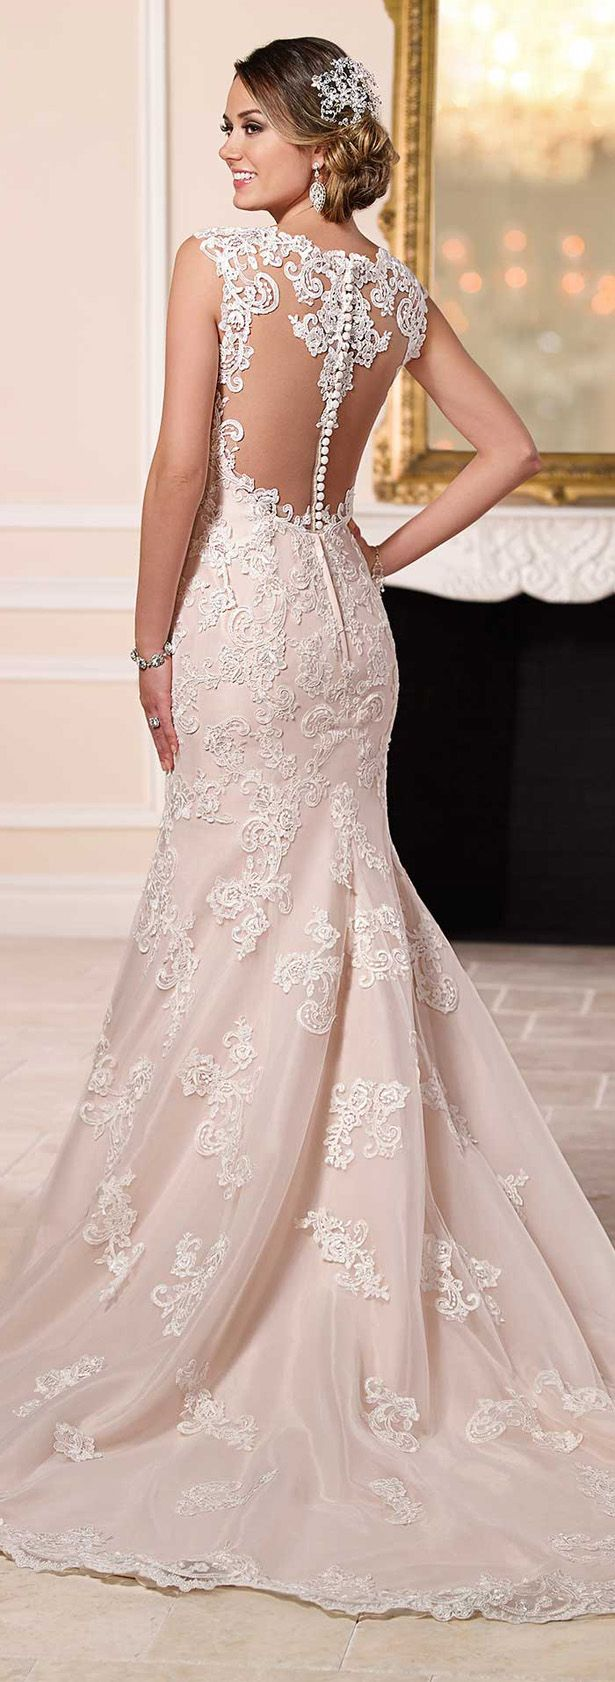 Pink and ivory wedding dress  Top  Wedding Ideas and Color Combos from   wedding dresses